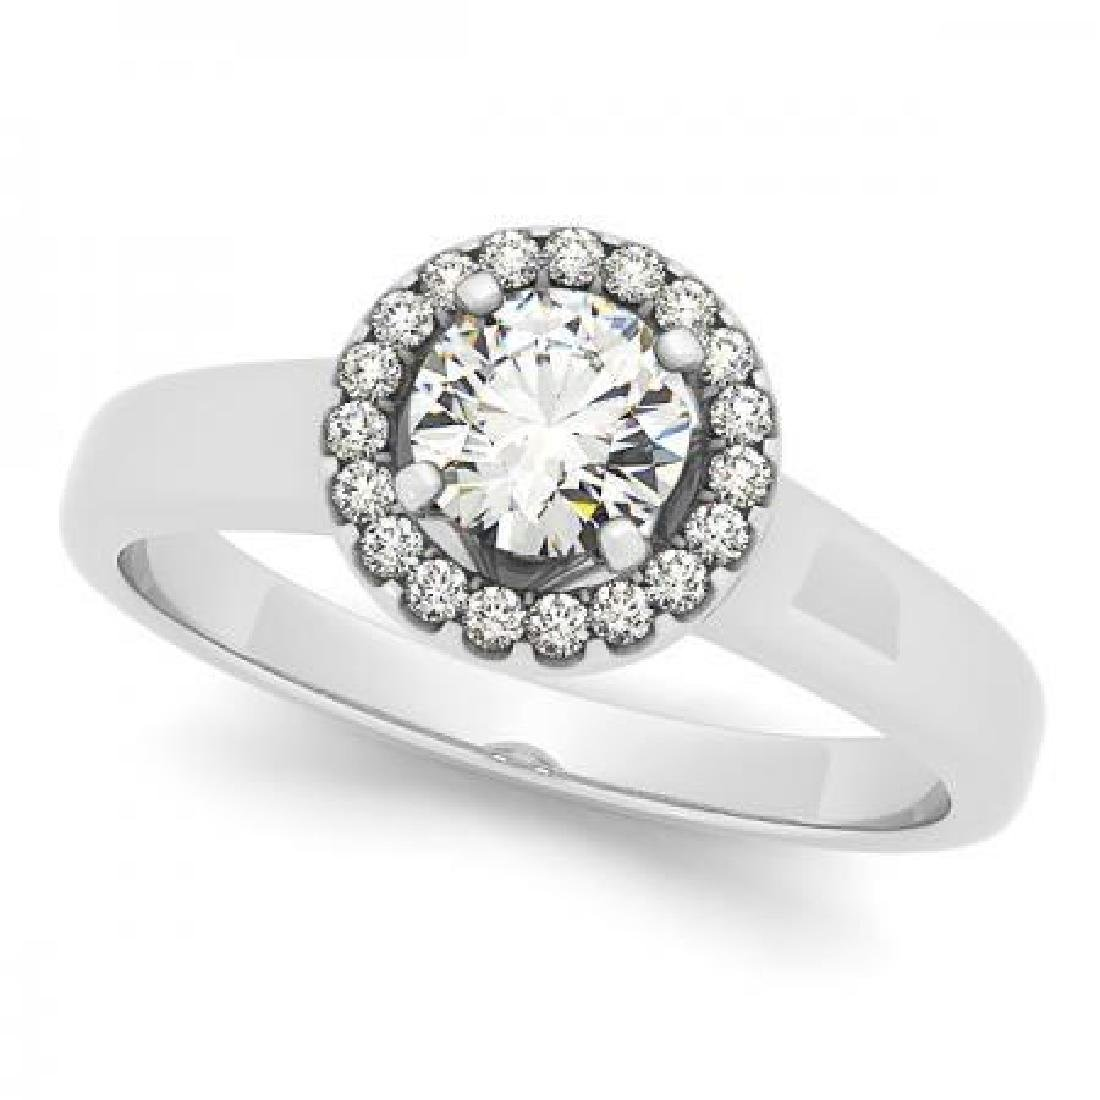 CERTIFIED PLATINUM 0.91 CT G-H/VS-SI1 DIAMOND HALO ENGA